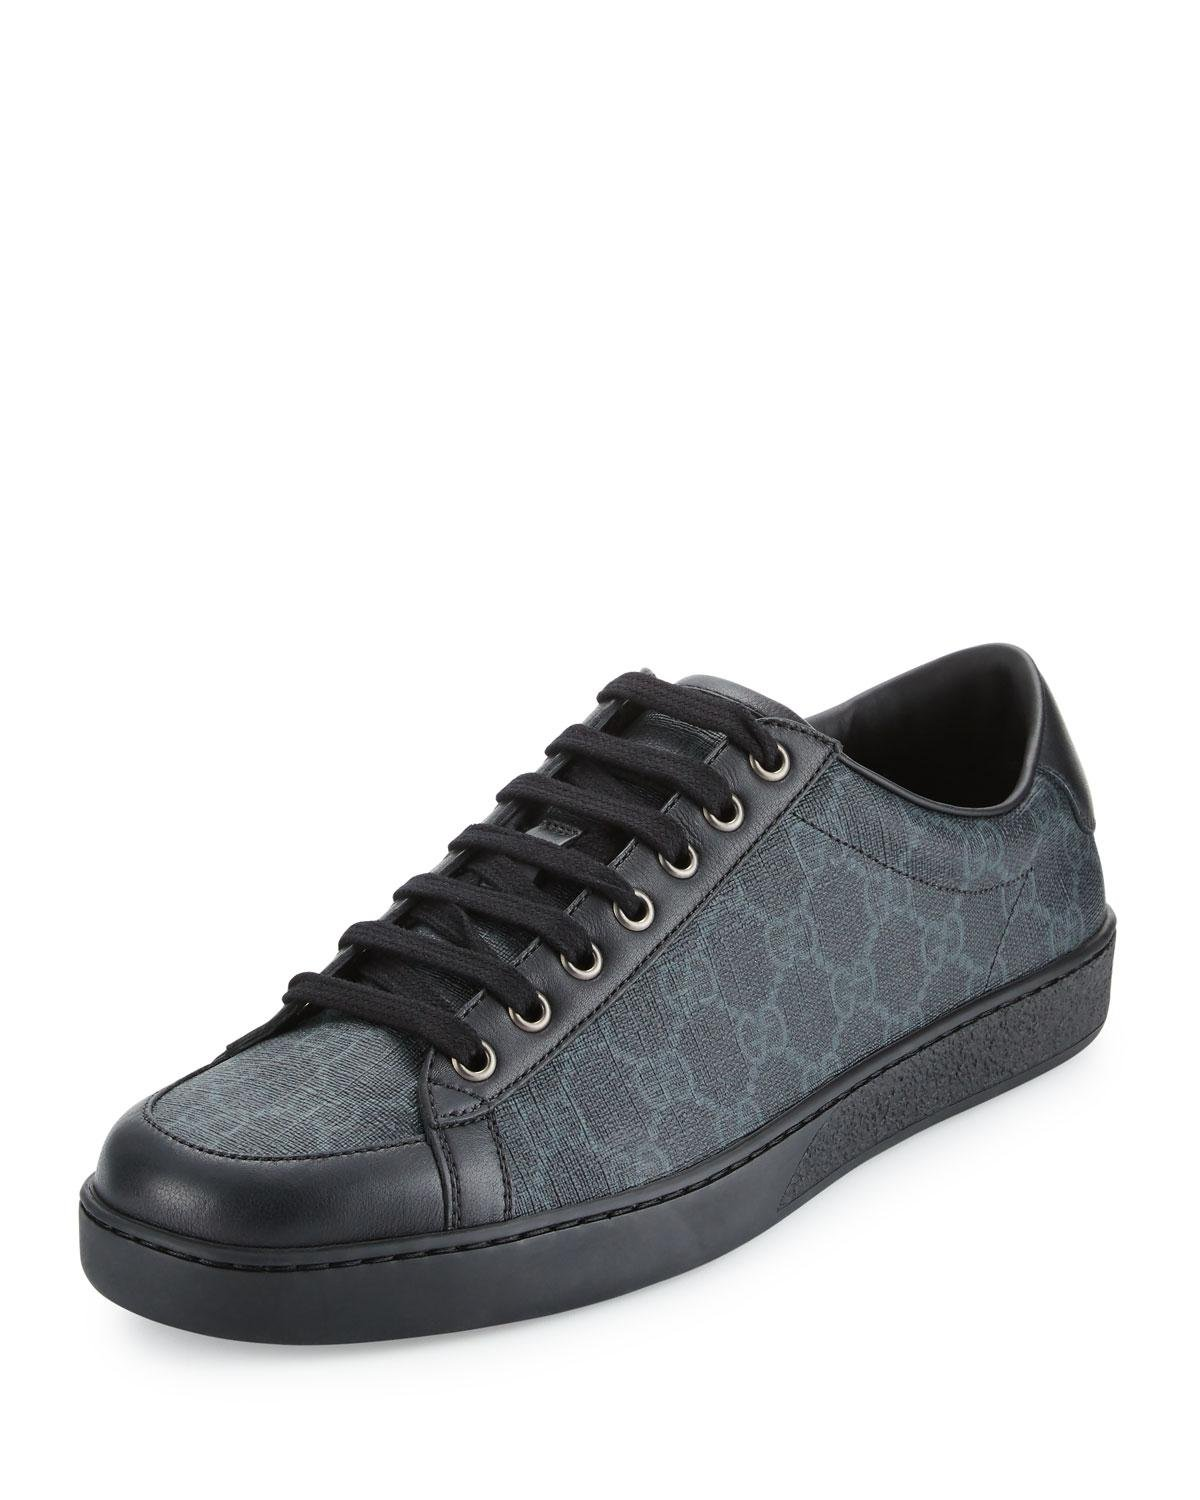 56b7941d838 Lyst - Gucci Brooklyn Gg Supreme Fabric Lace-up Sneaker in Black for Men